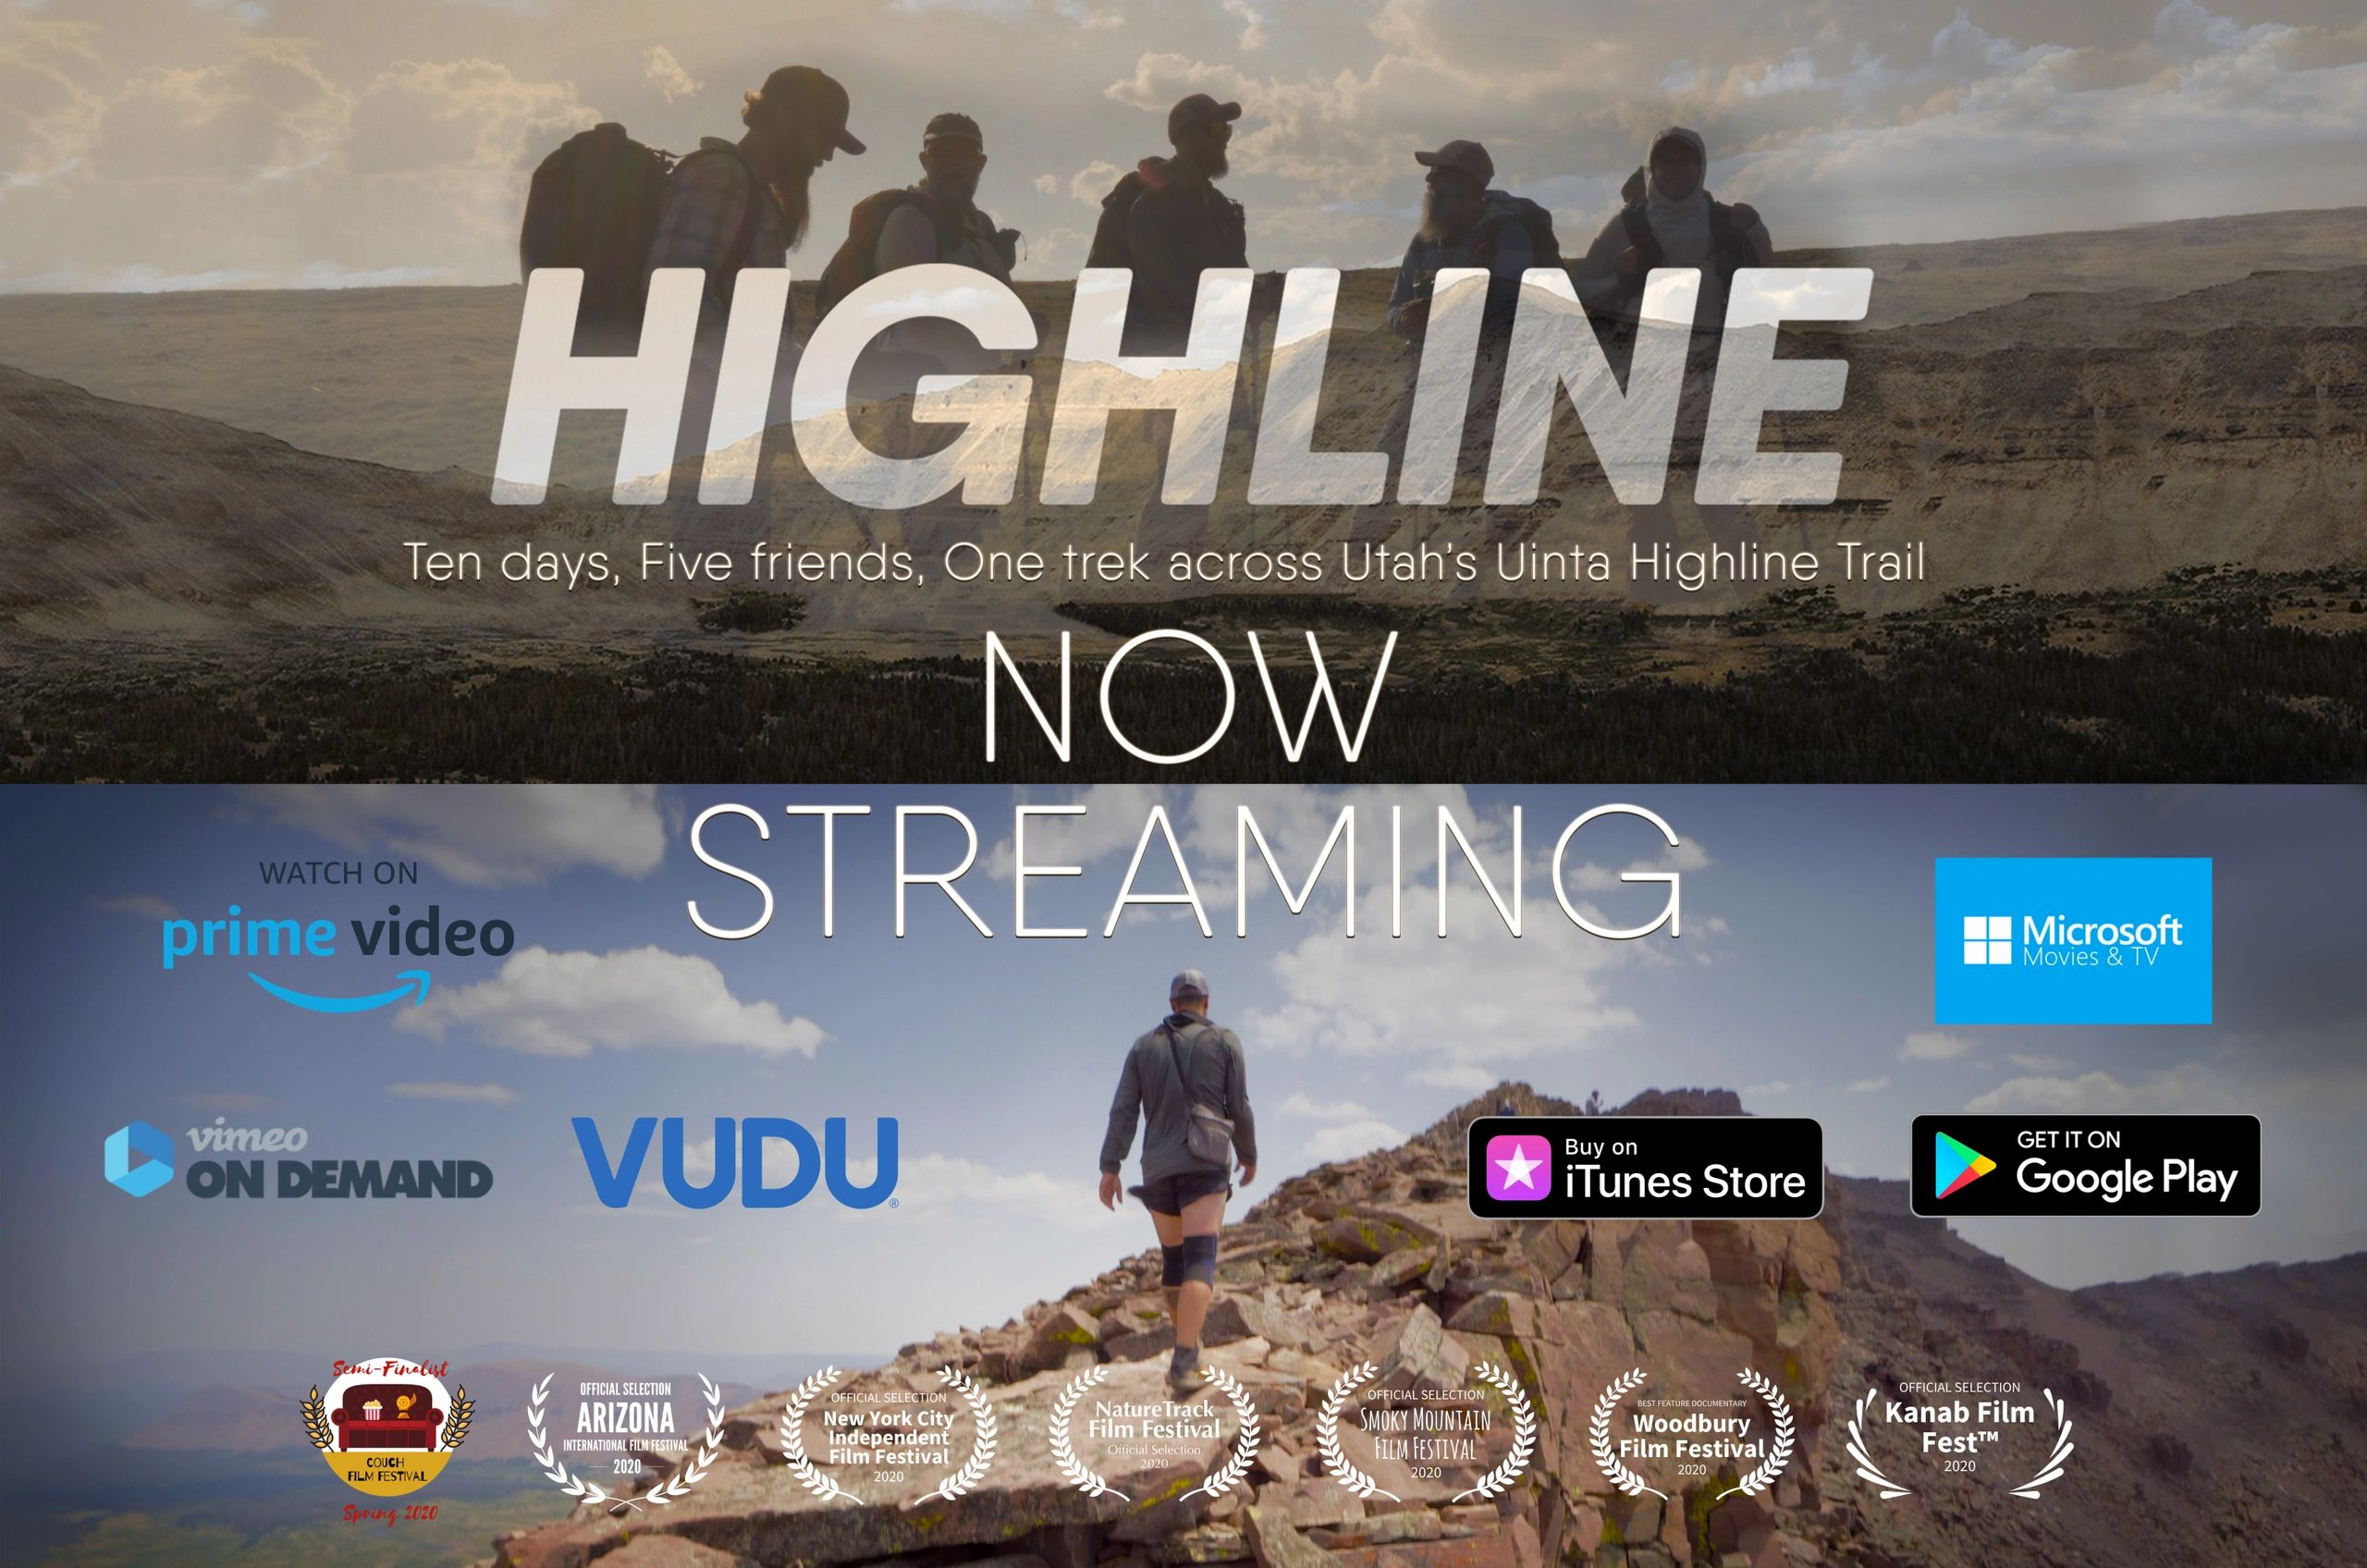 HIGHLINE 10 days, 5 friends, 1 trek across Utah's Uinta Highline Trail